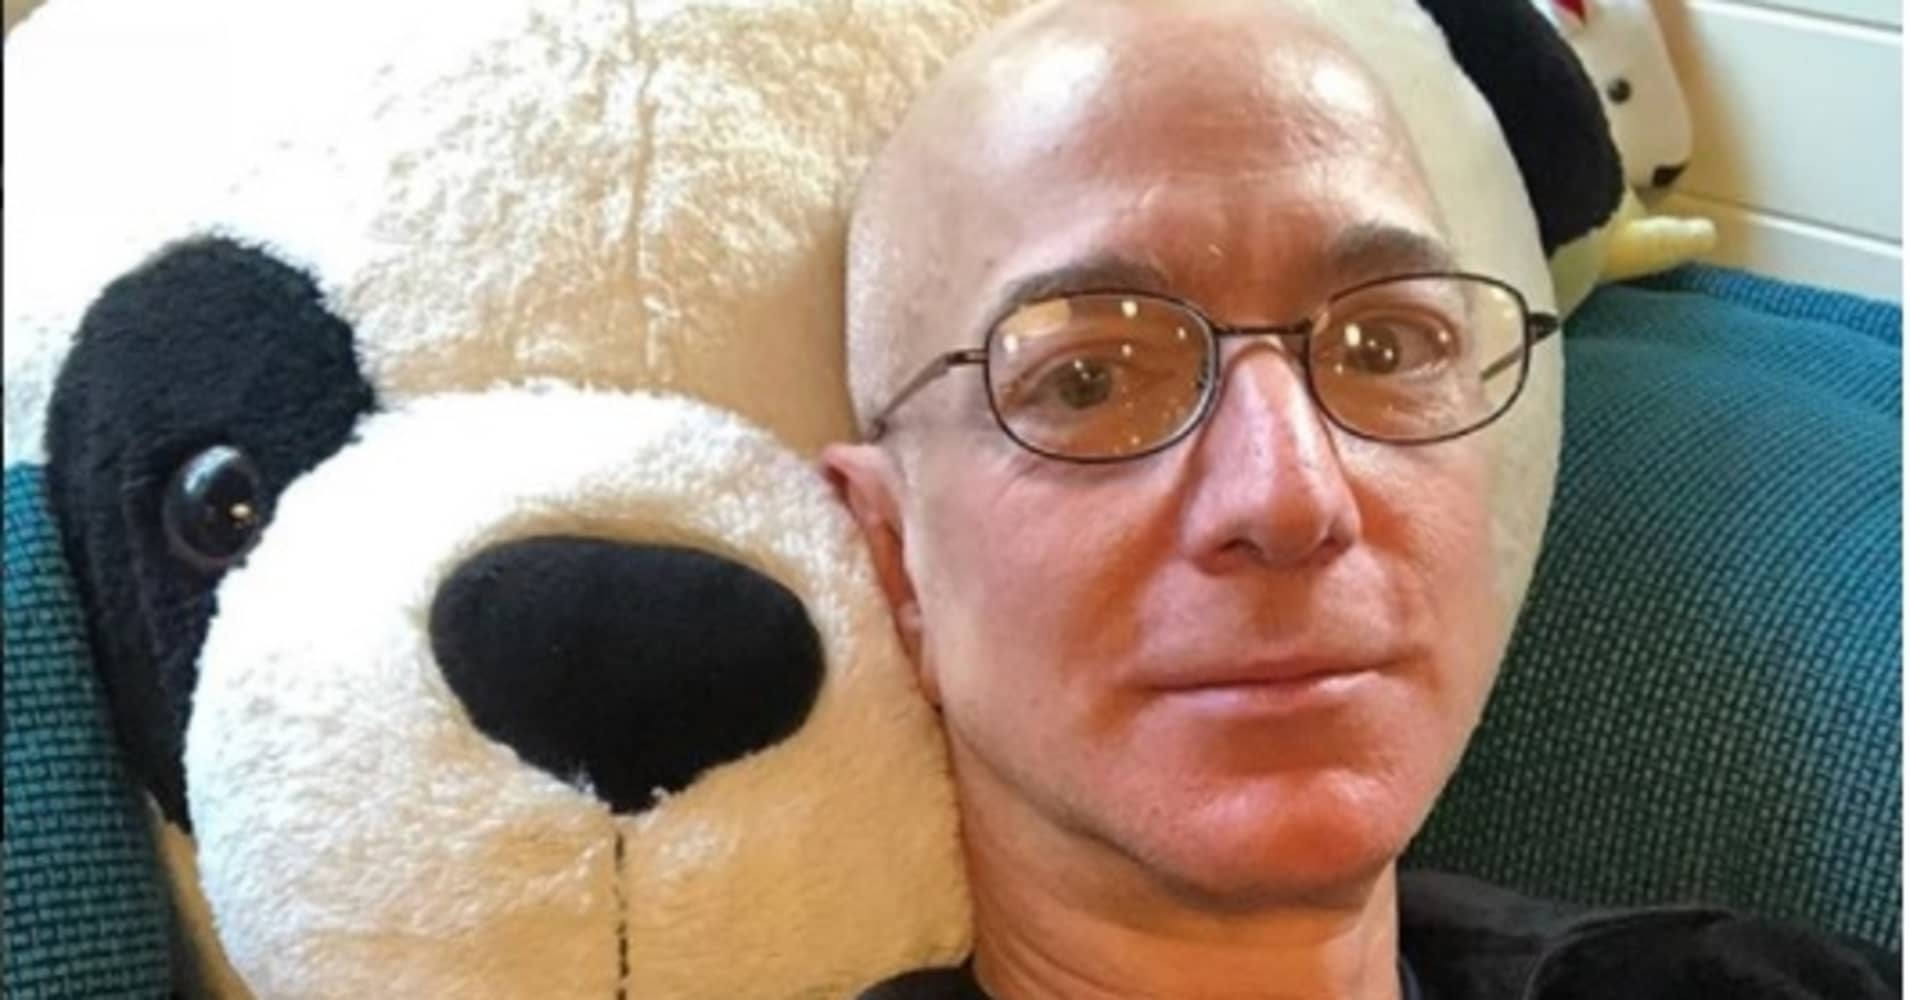 Jeff Bezos posted a picture of himself lounging on his kids' stuffed panda bear on his personal Instagram page.